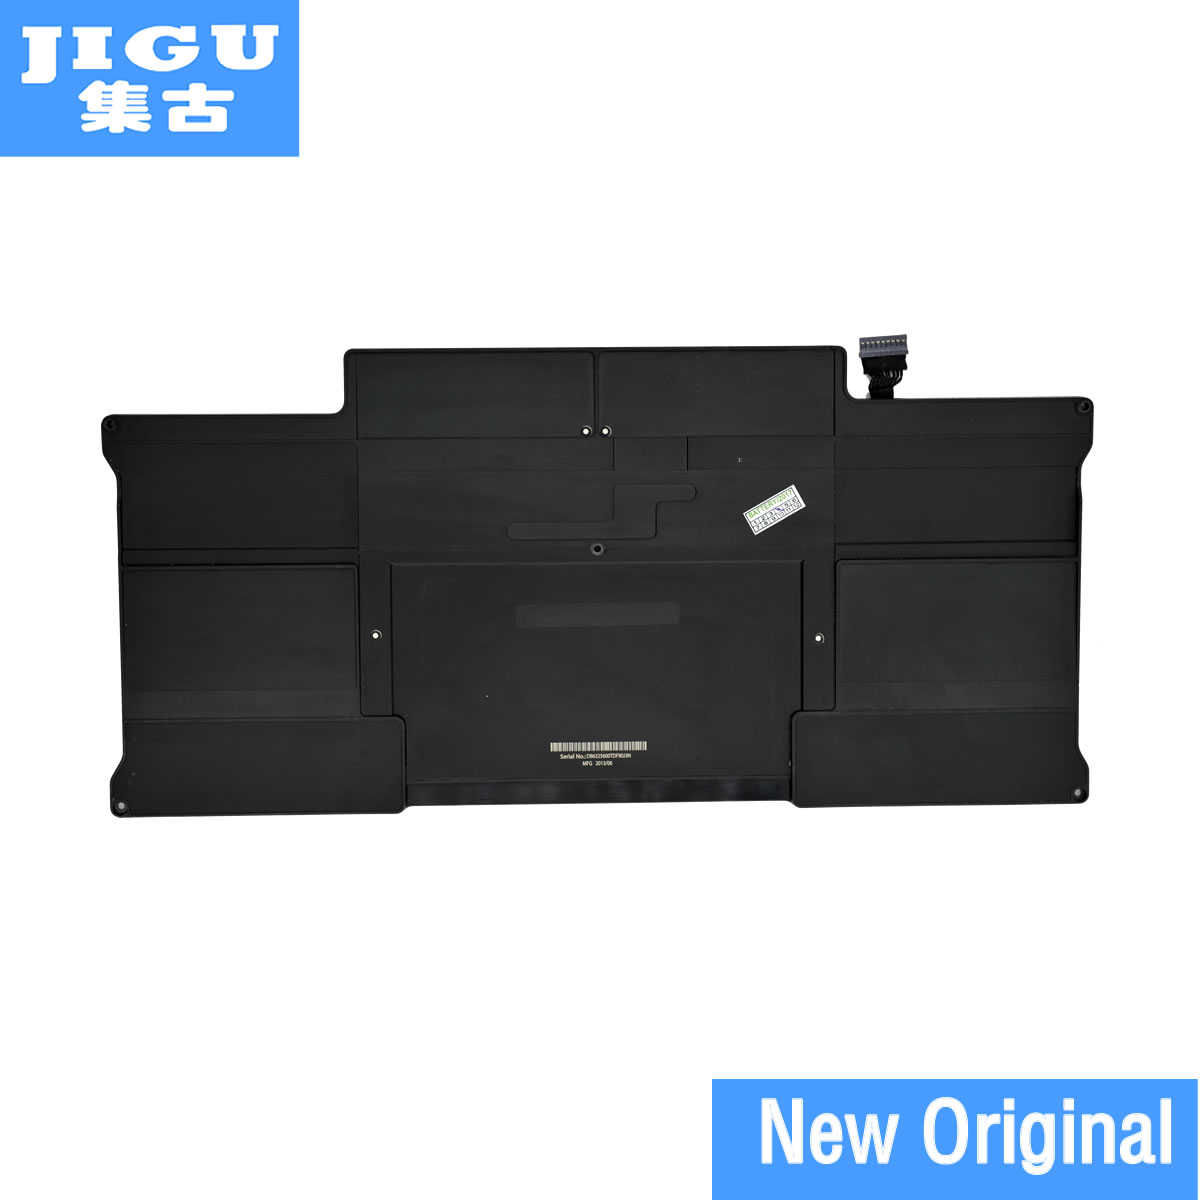 JIGU Brand New Original Genuine Battery A1405 For MacBook Air 13 A1369 Mid 2011 A1466 Mid 2012, equipped with two screwdrivers heart shape non woven invisible disposable nipple covers